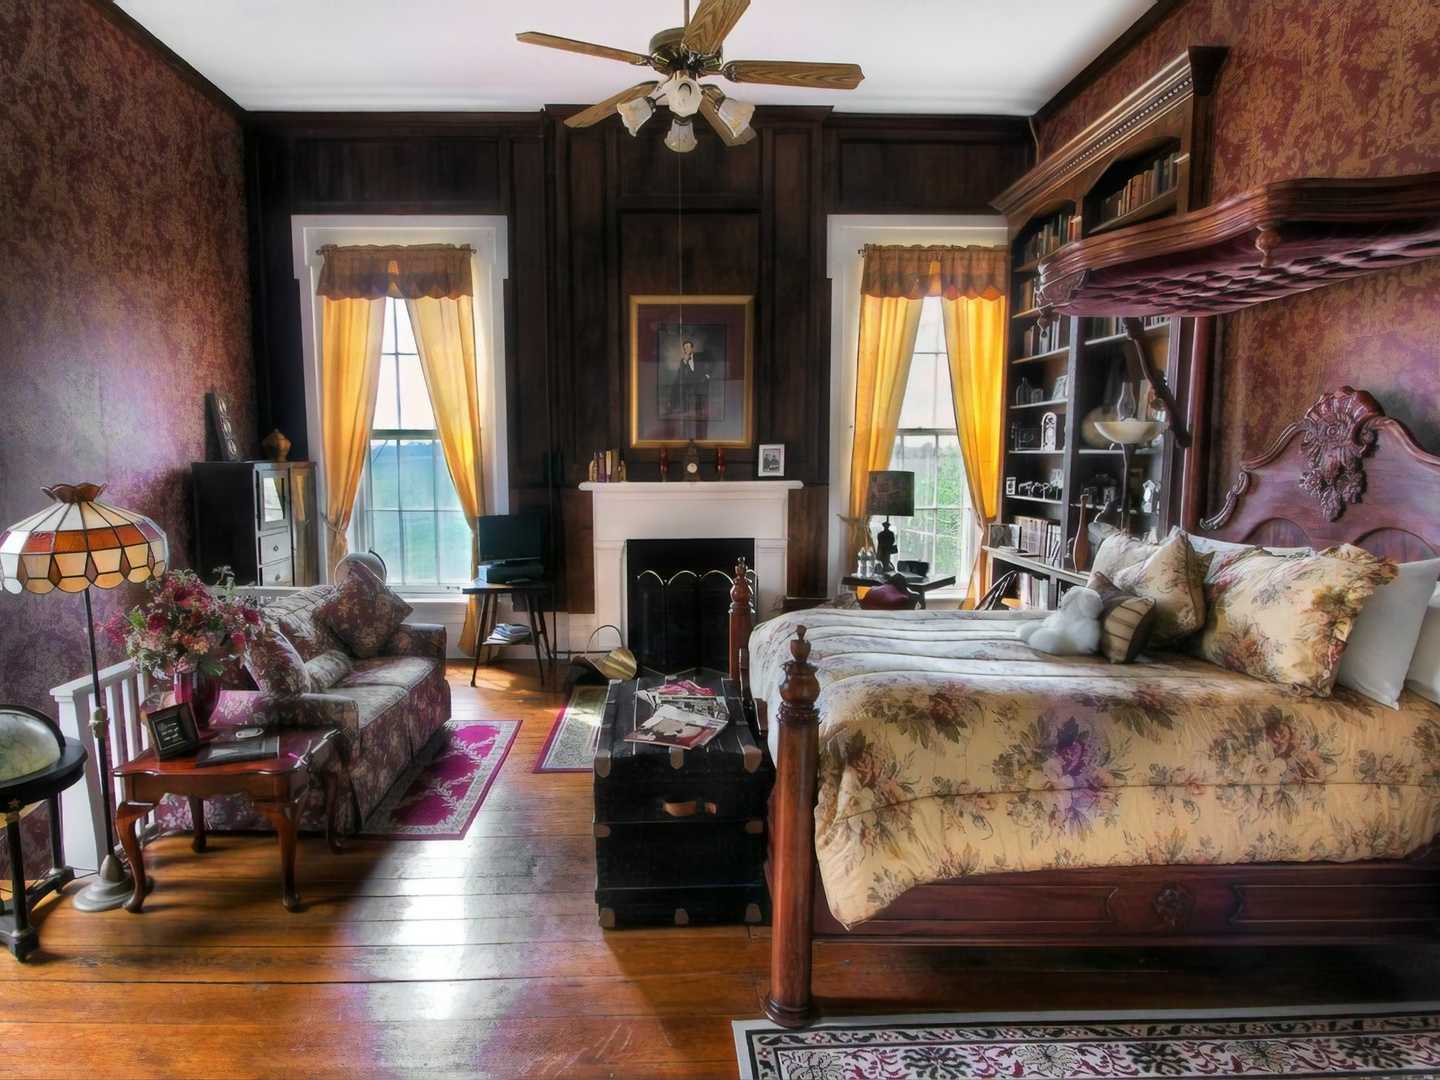 A living room filled with furniture and a fire place at Historic Maple Hill Manor B&B.